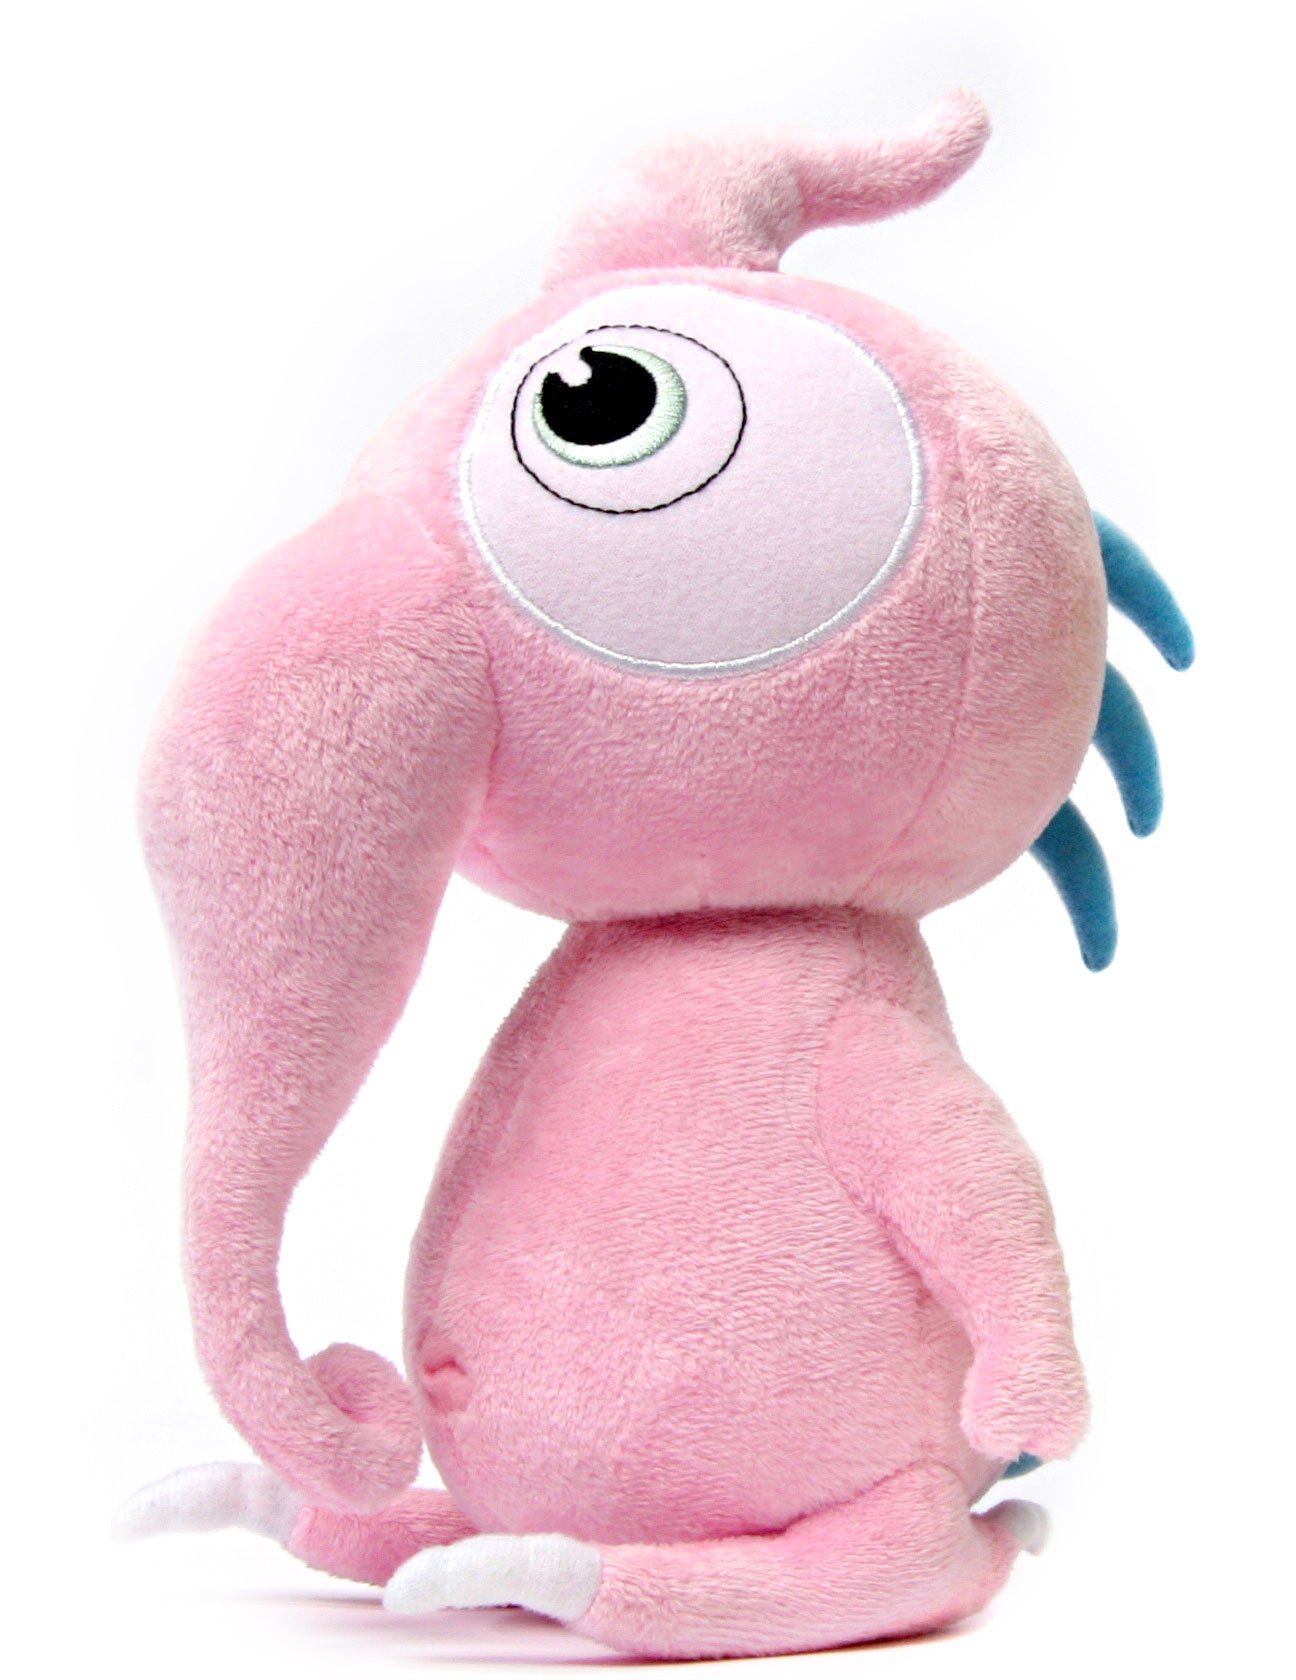 Squeek - The Monster of Innocence - WorryWoo Plush Toy - Spiffy